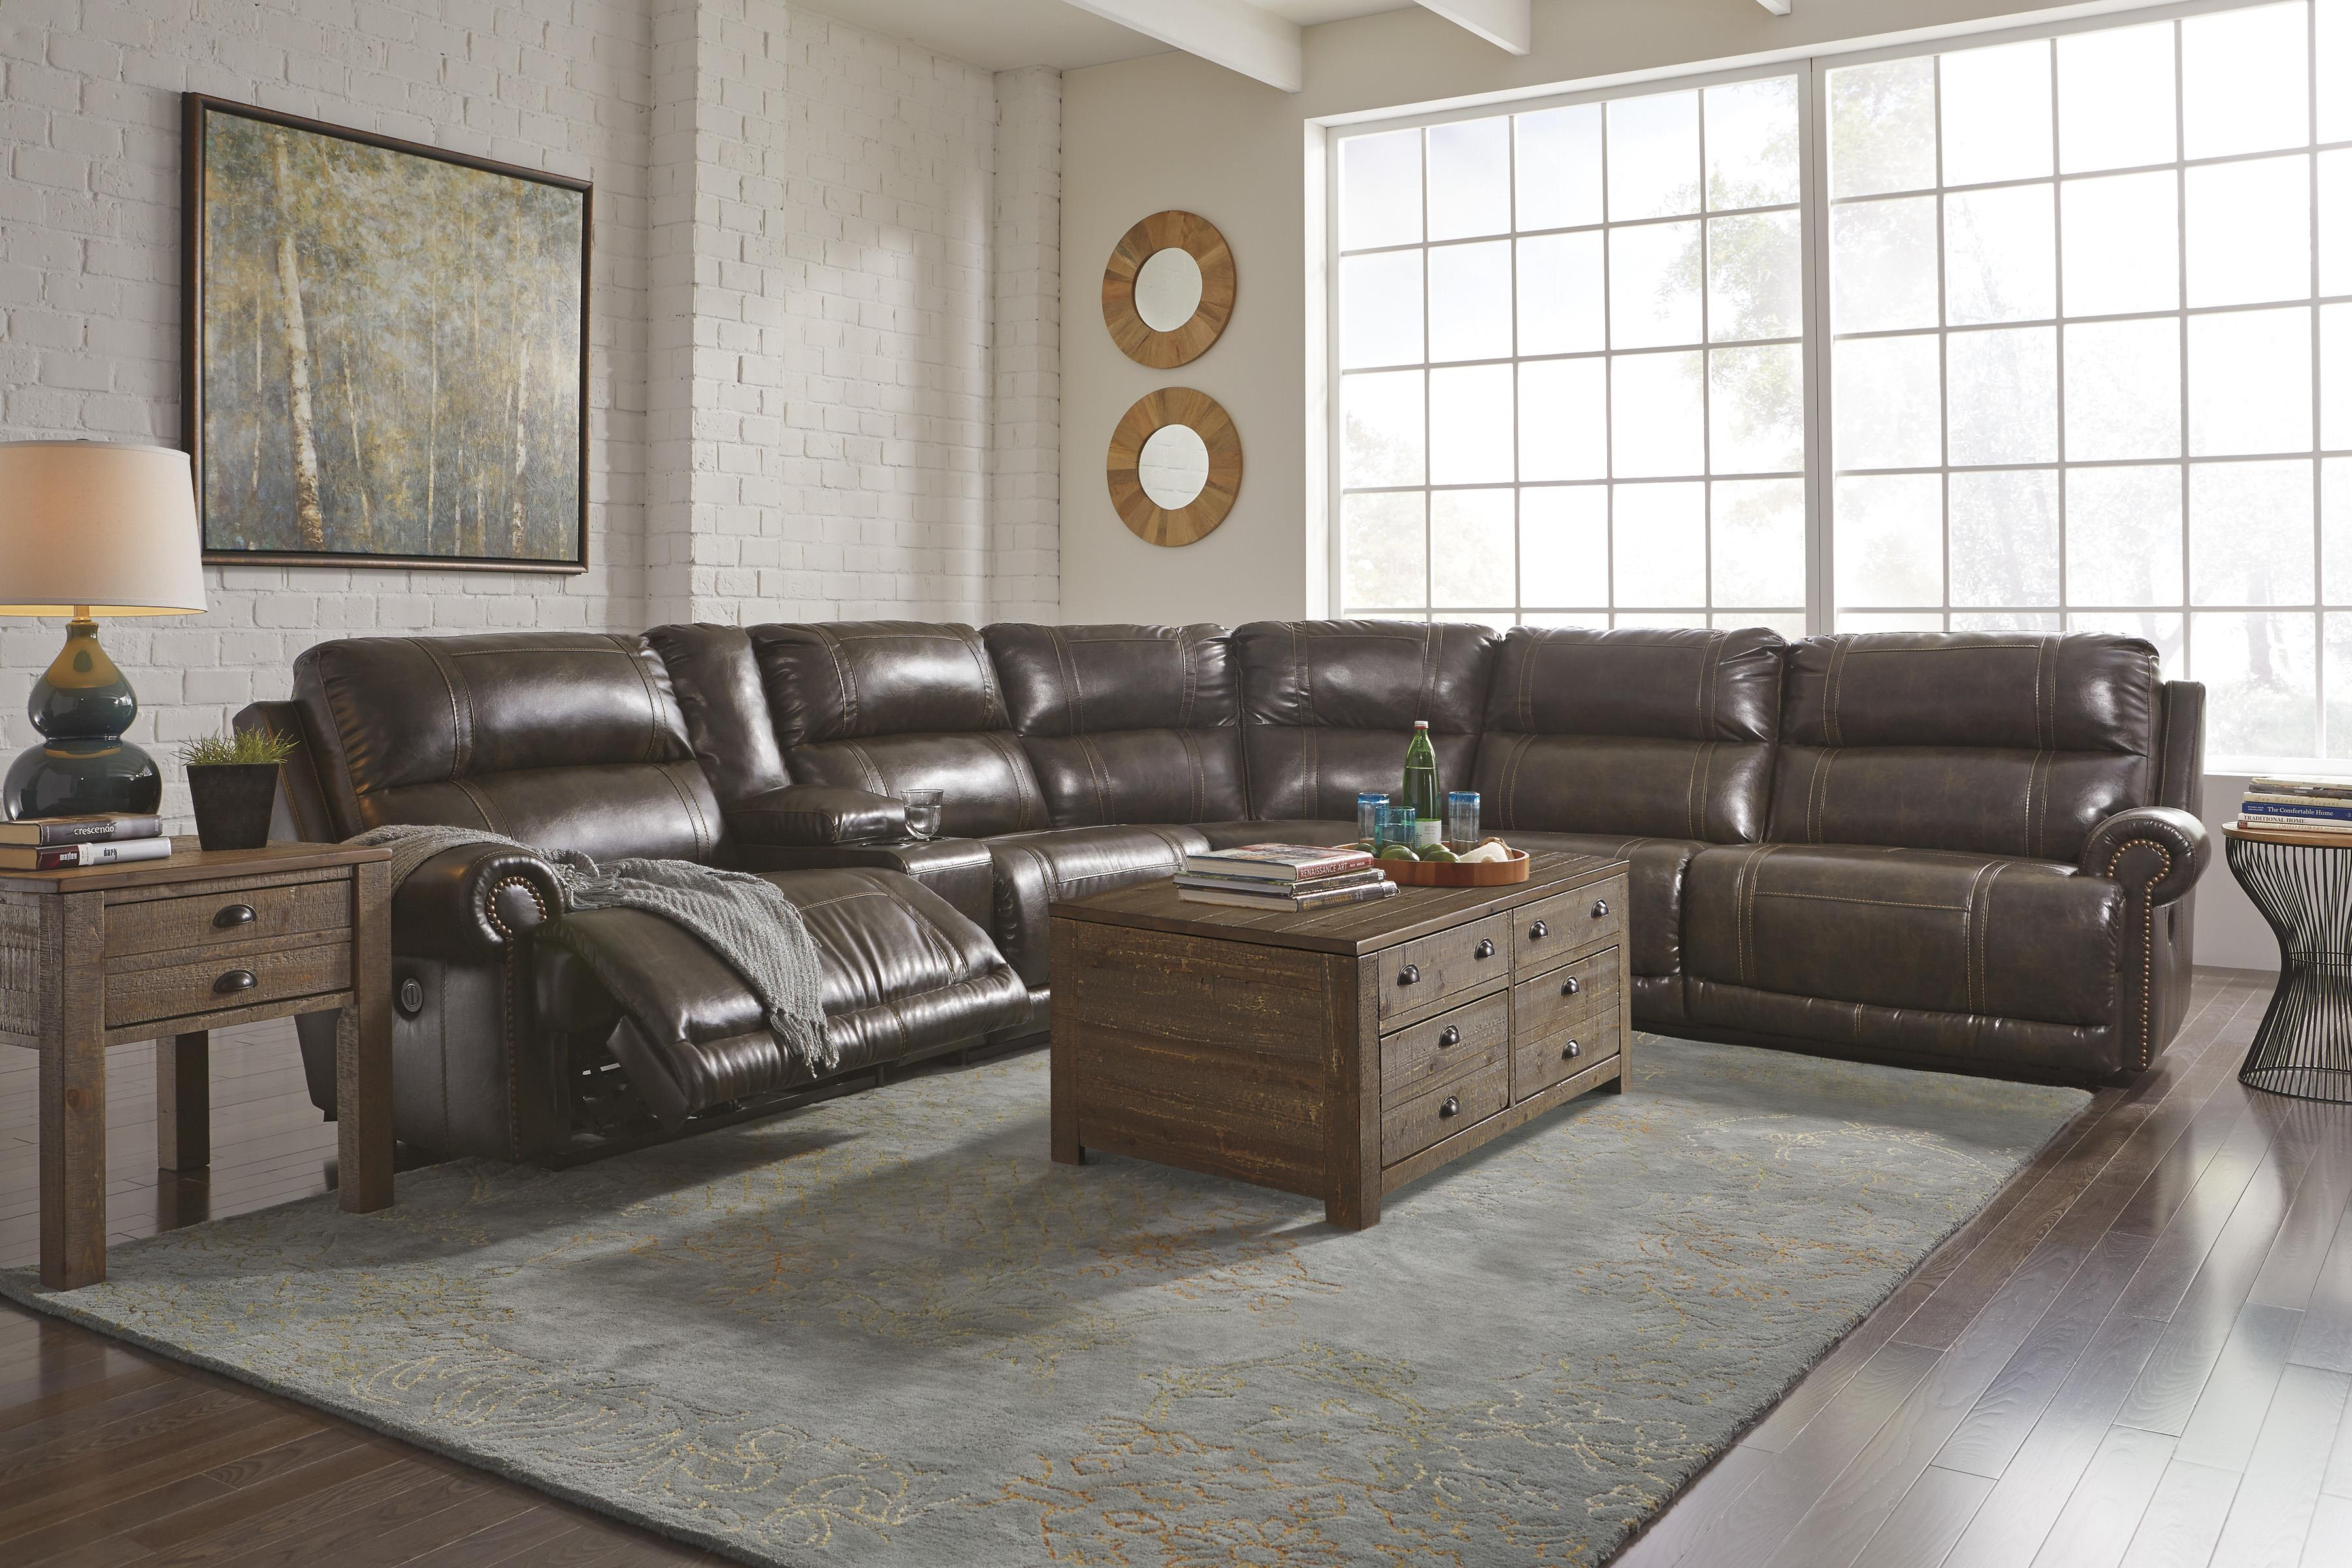 6 Piece Power Reclining Sectional With Storage Console Armless Recliner By Signature Design By